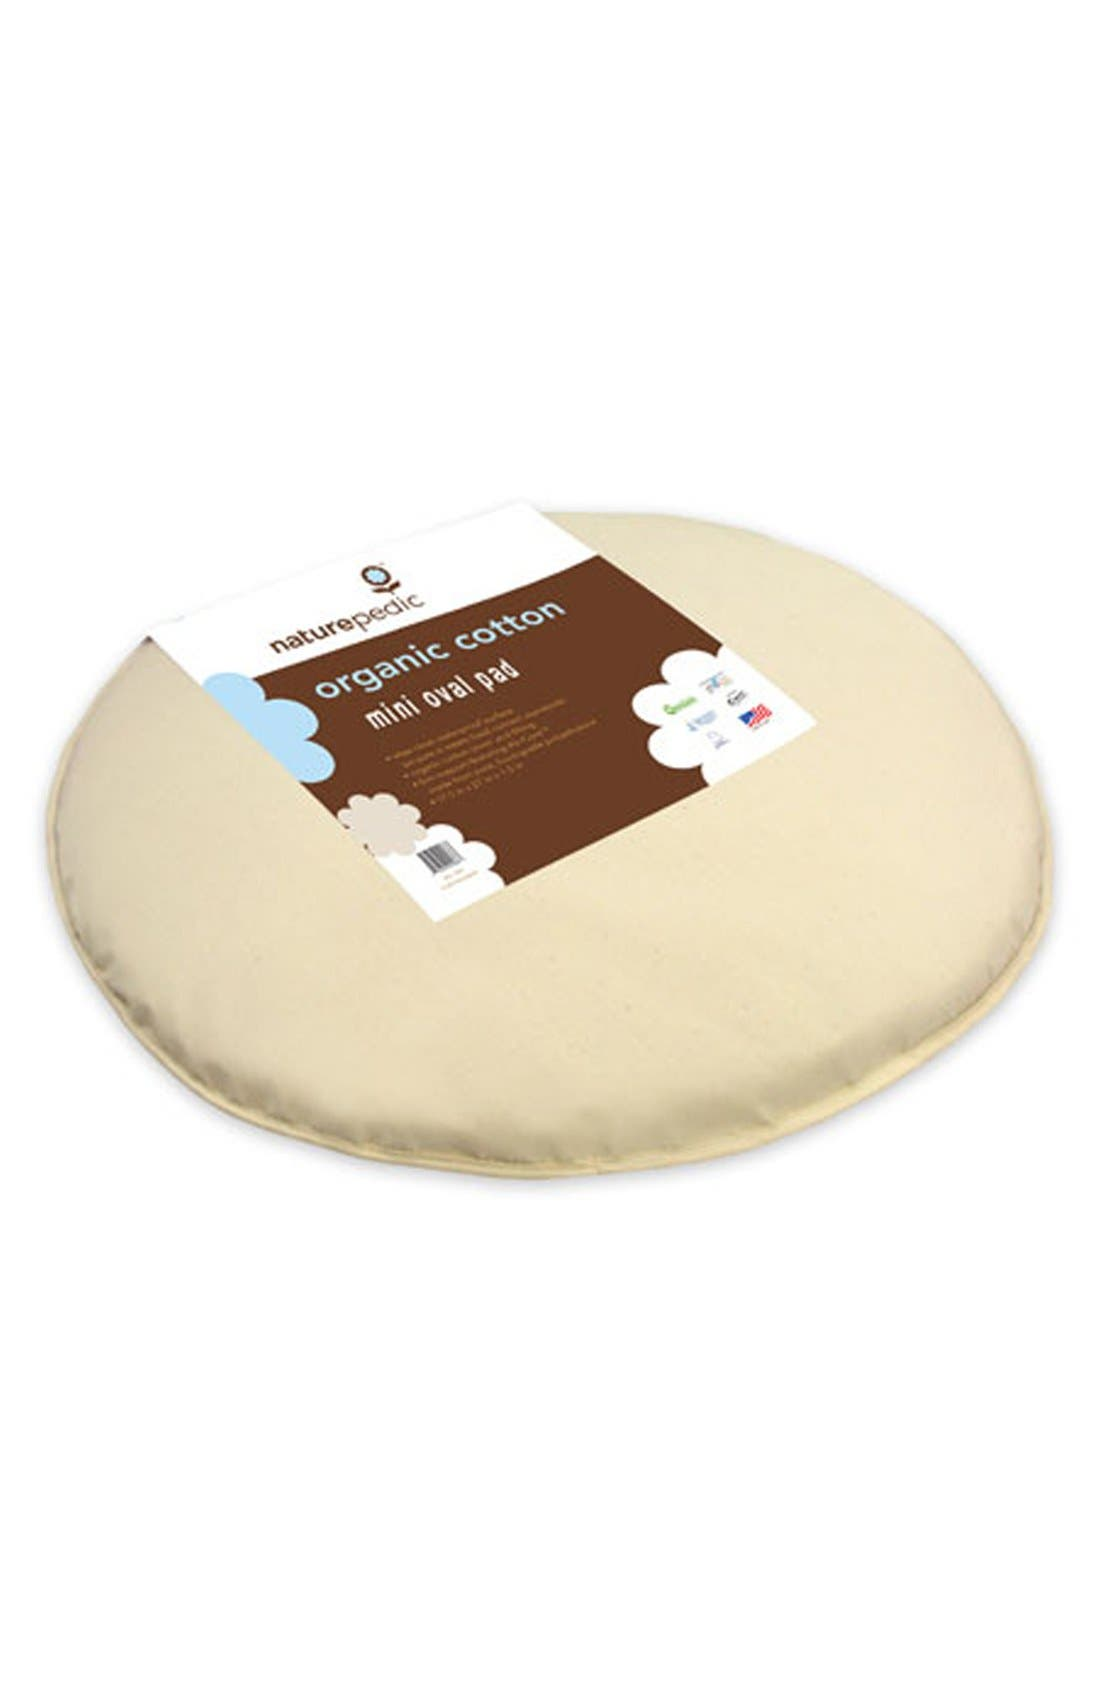 Alternate Image 2  - Naturepedic Organic Cotton Oval Mini Mattress Pad for Stokke Sleepi Mini